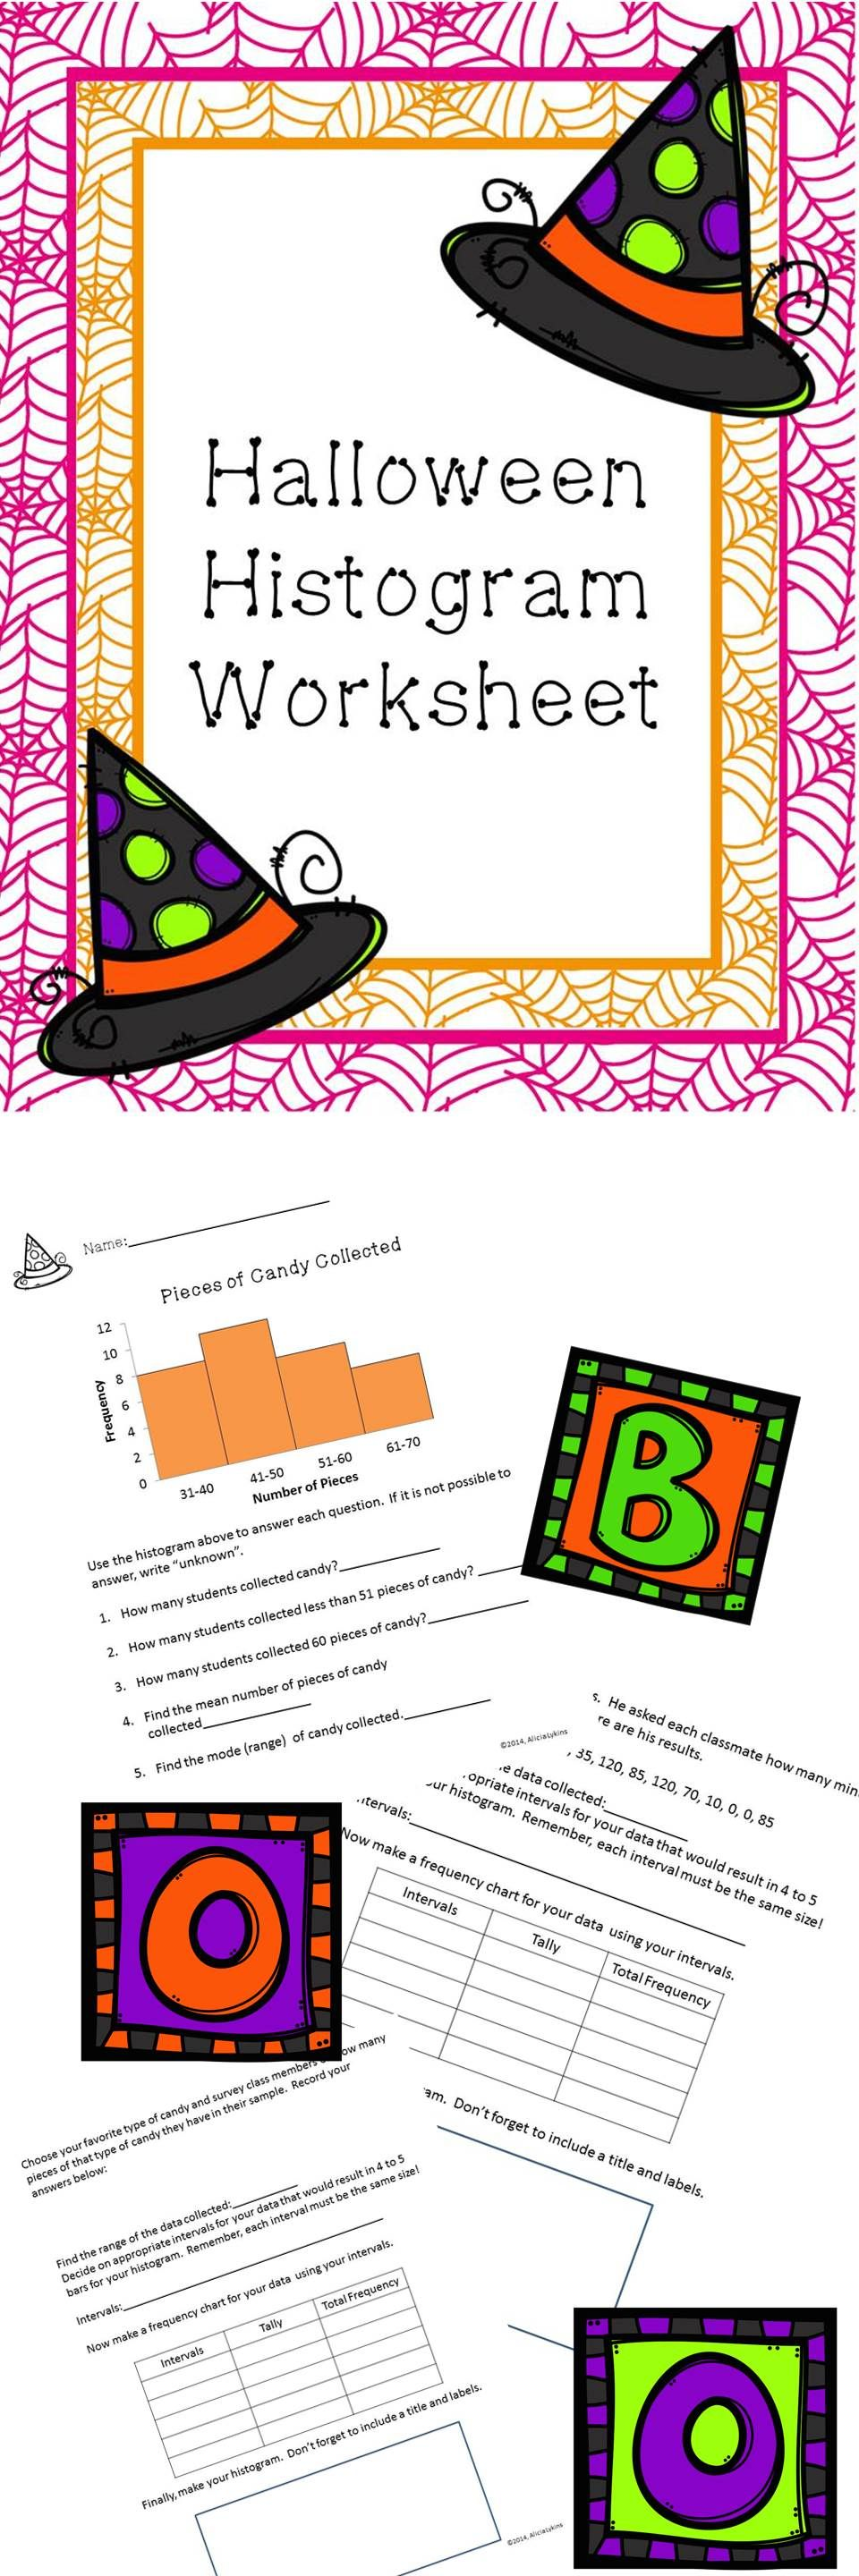 worksheet Histograms Worksheets halloween histogram worksheet worksheets activities and math spooky sweet making interpreting histograms as well the option for